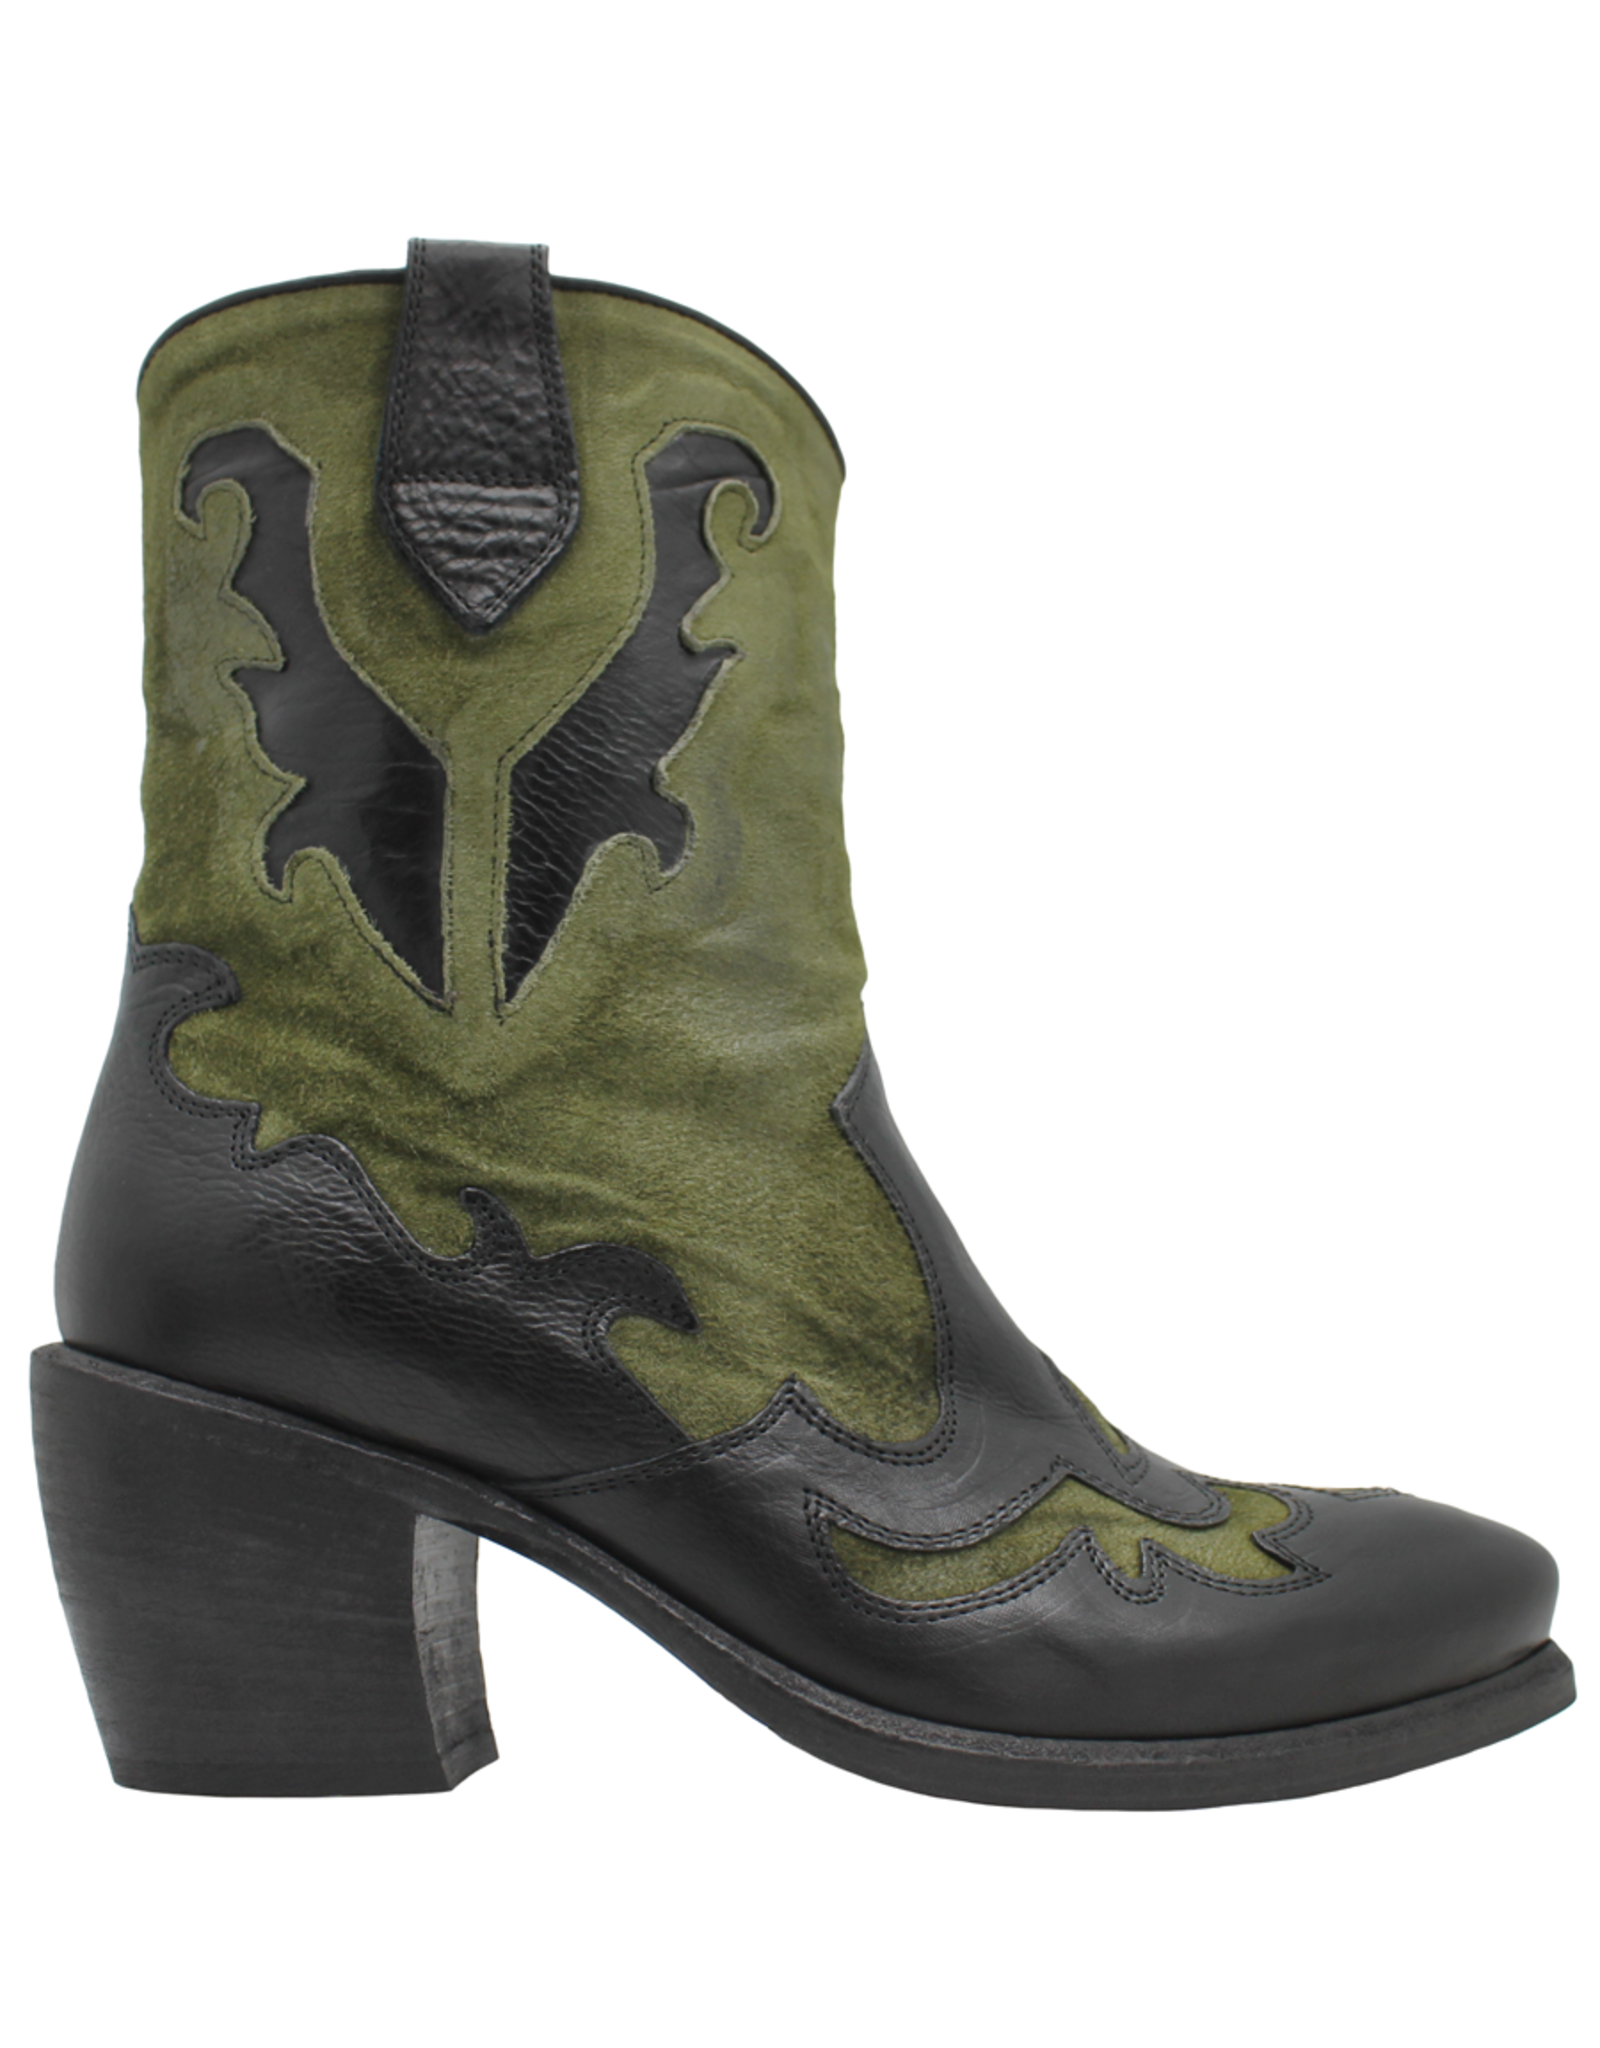 Now Now Black With Green Suede Cowboy Ankle Boot 6015